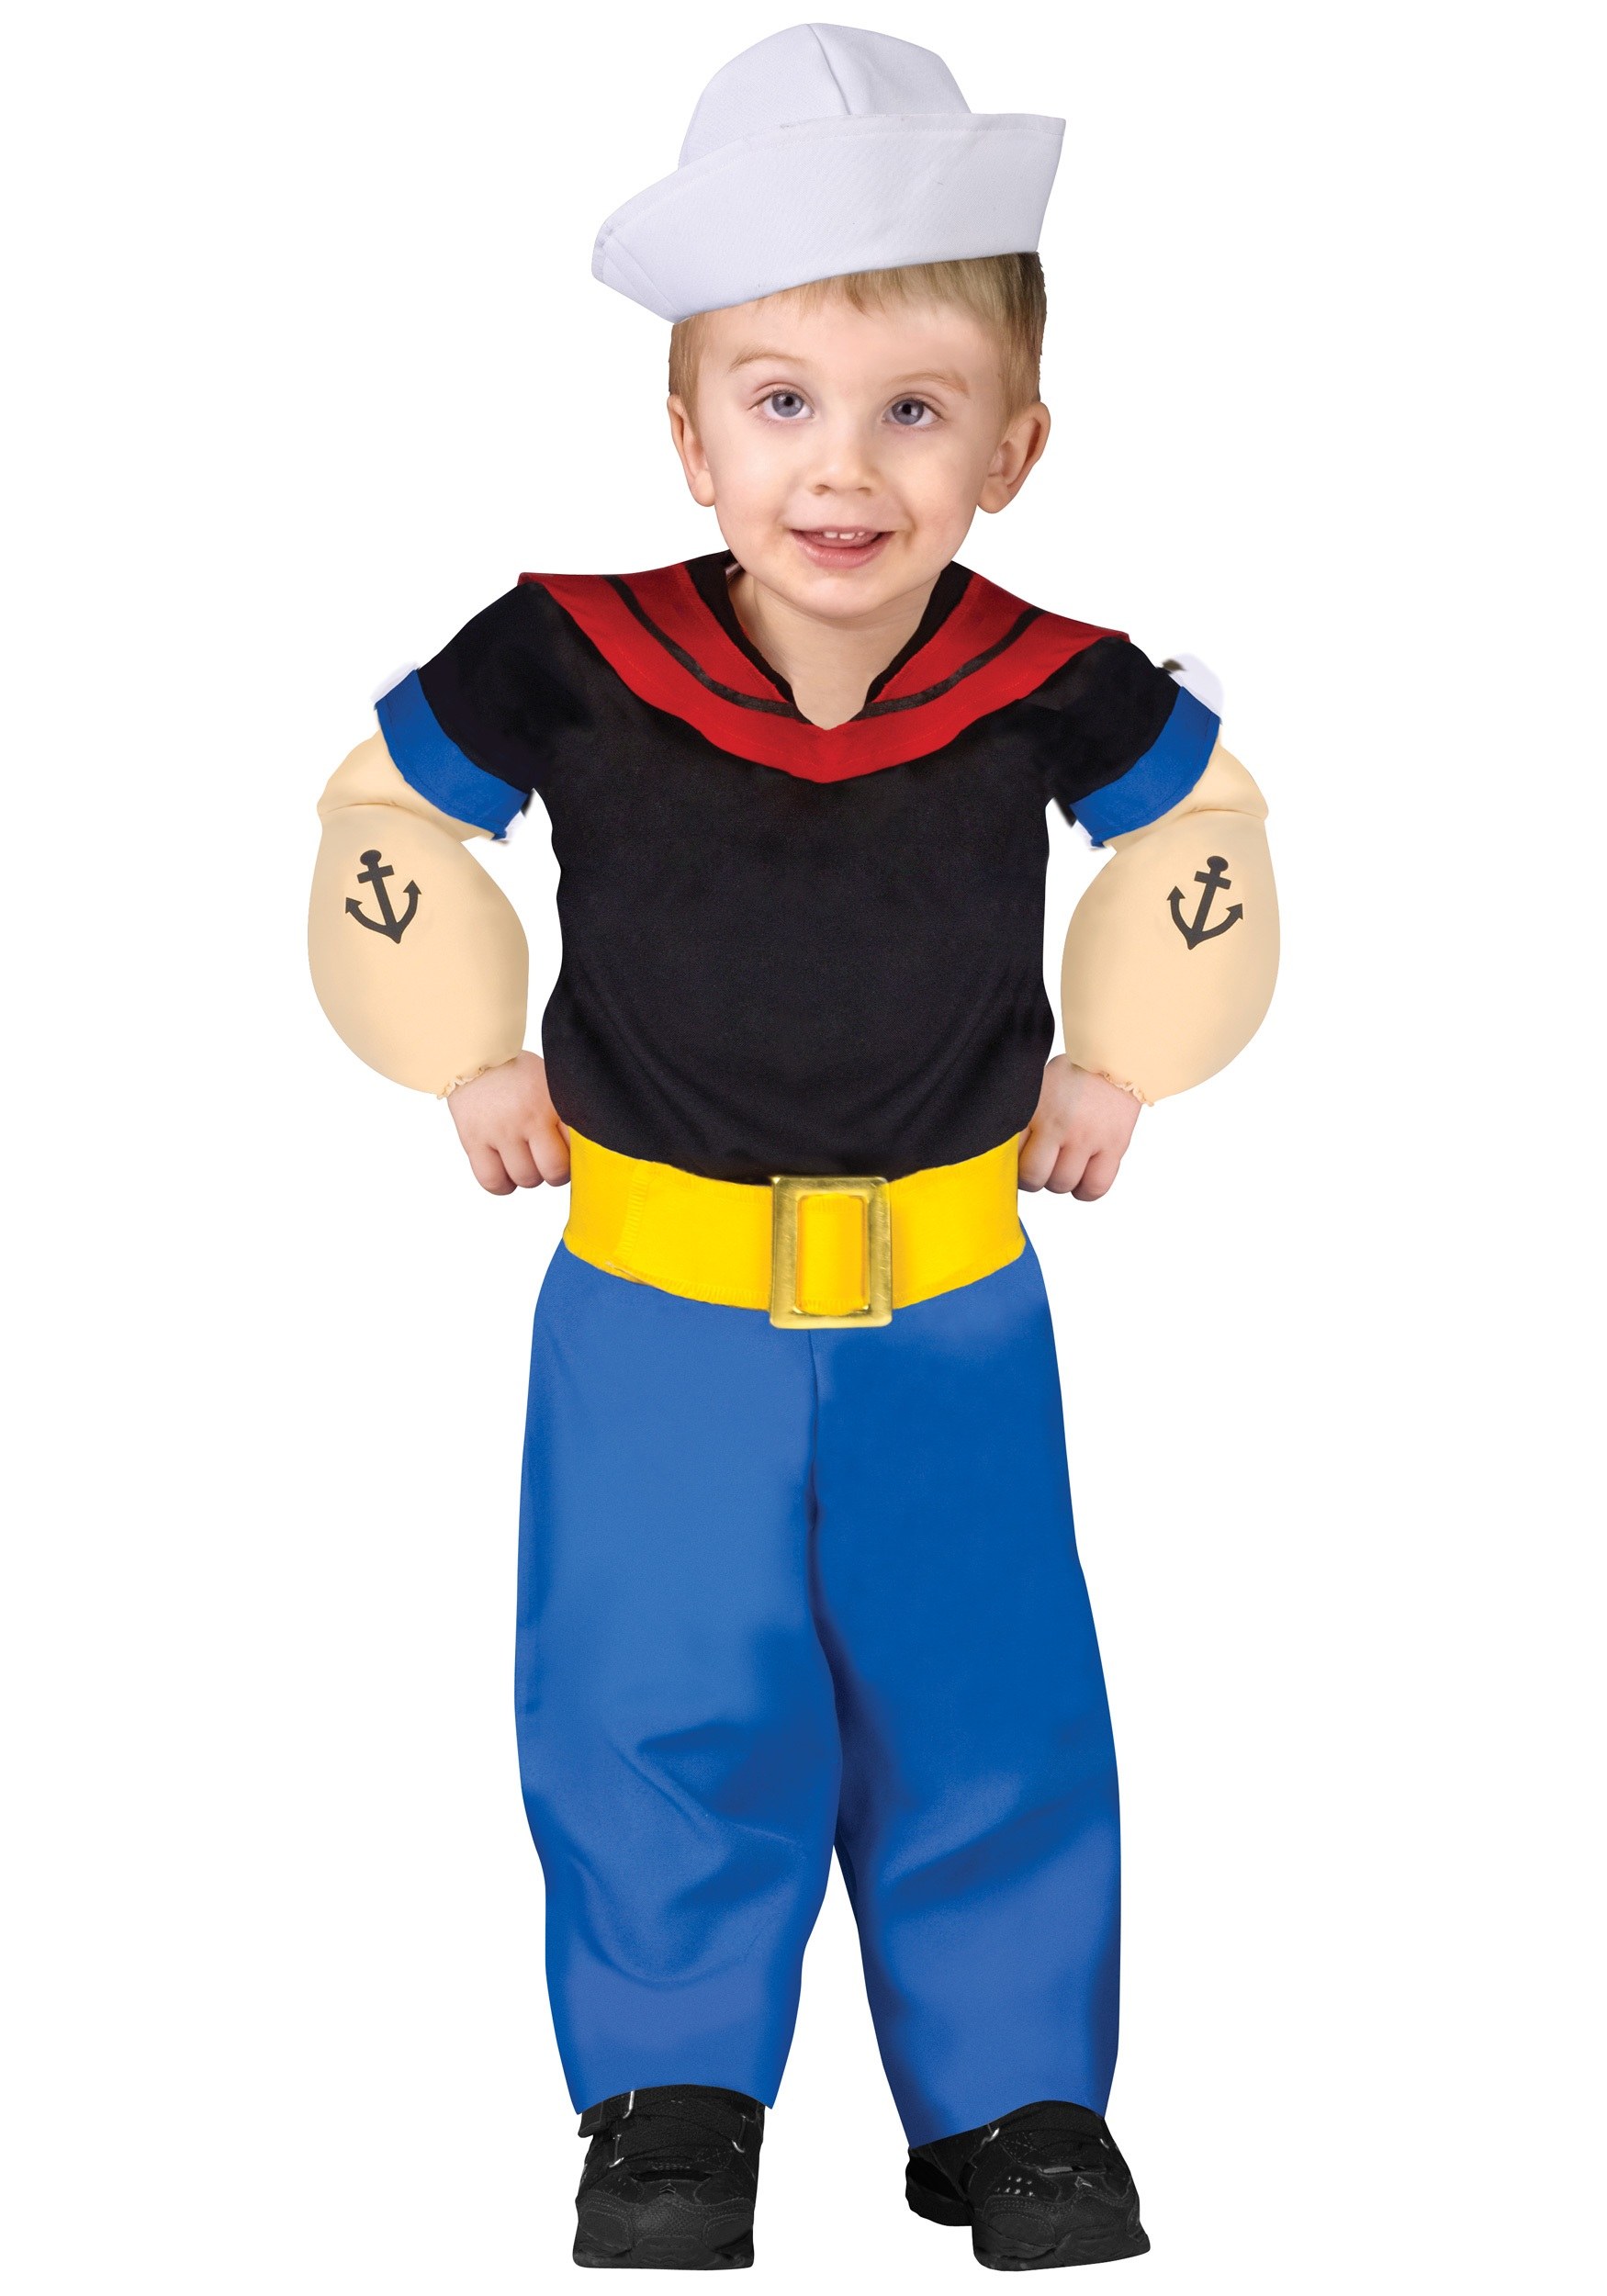 Toddler Popeye the Sailor Costume - Kids Popeye the Sailor Costumes